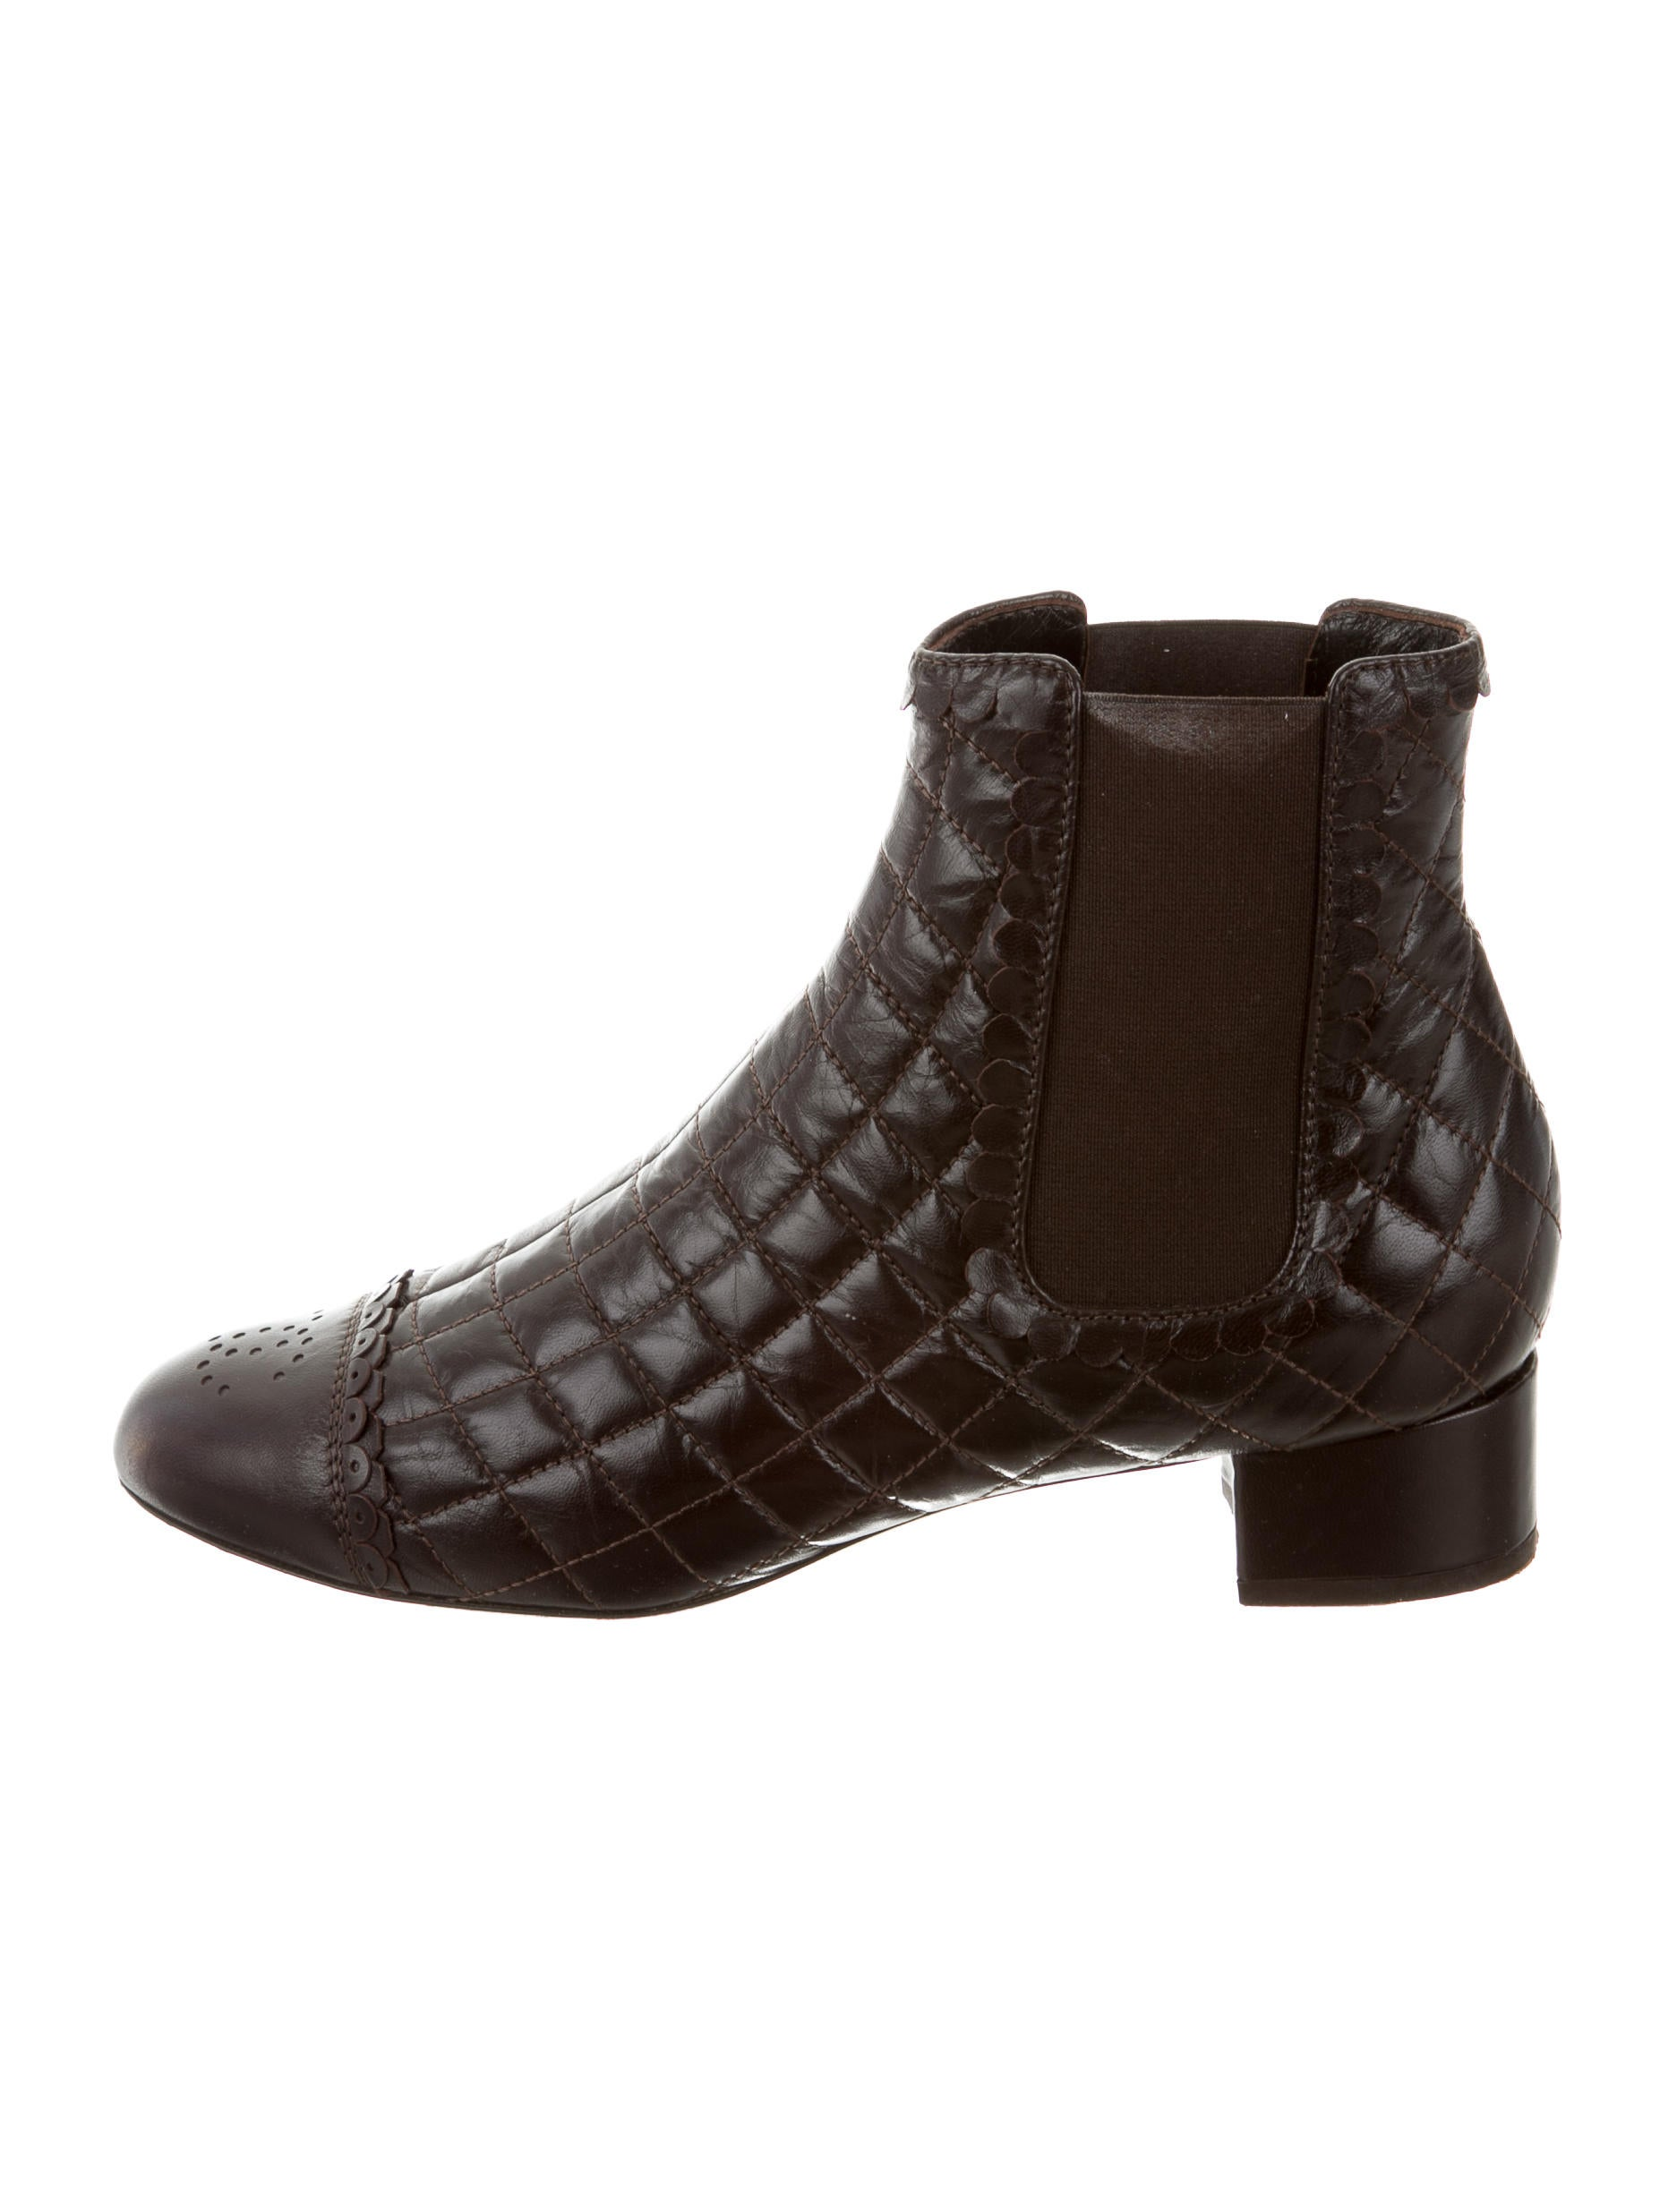 chanel quilted leather ankle boots shoes cha131693